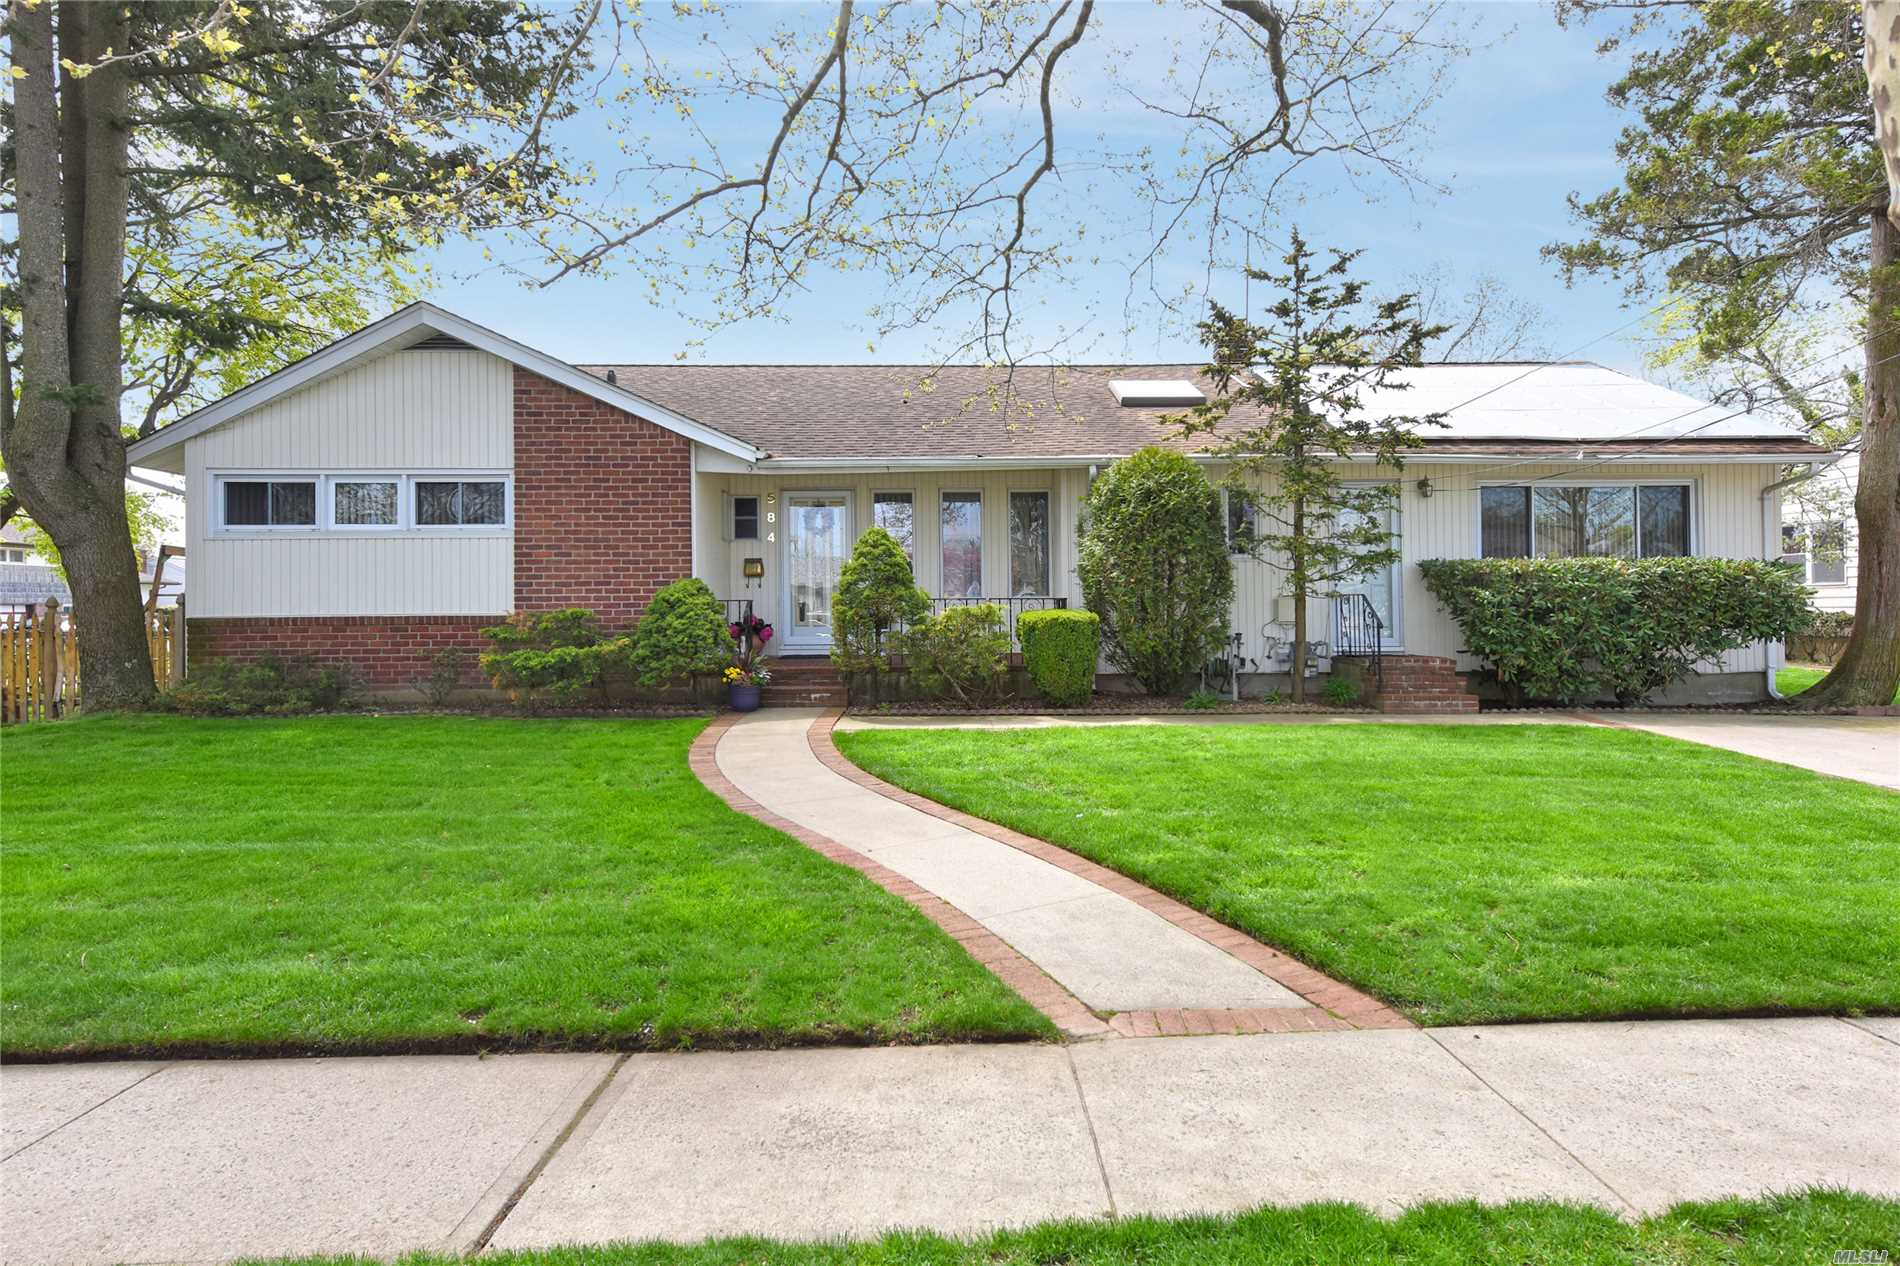 584 Bellmore Ave - East Meadow, New York